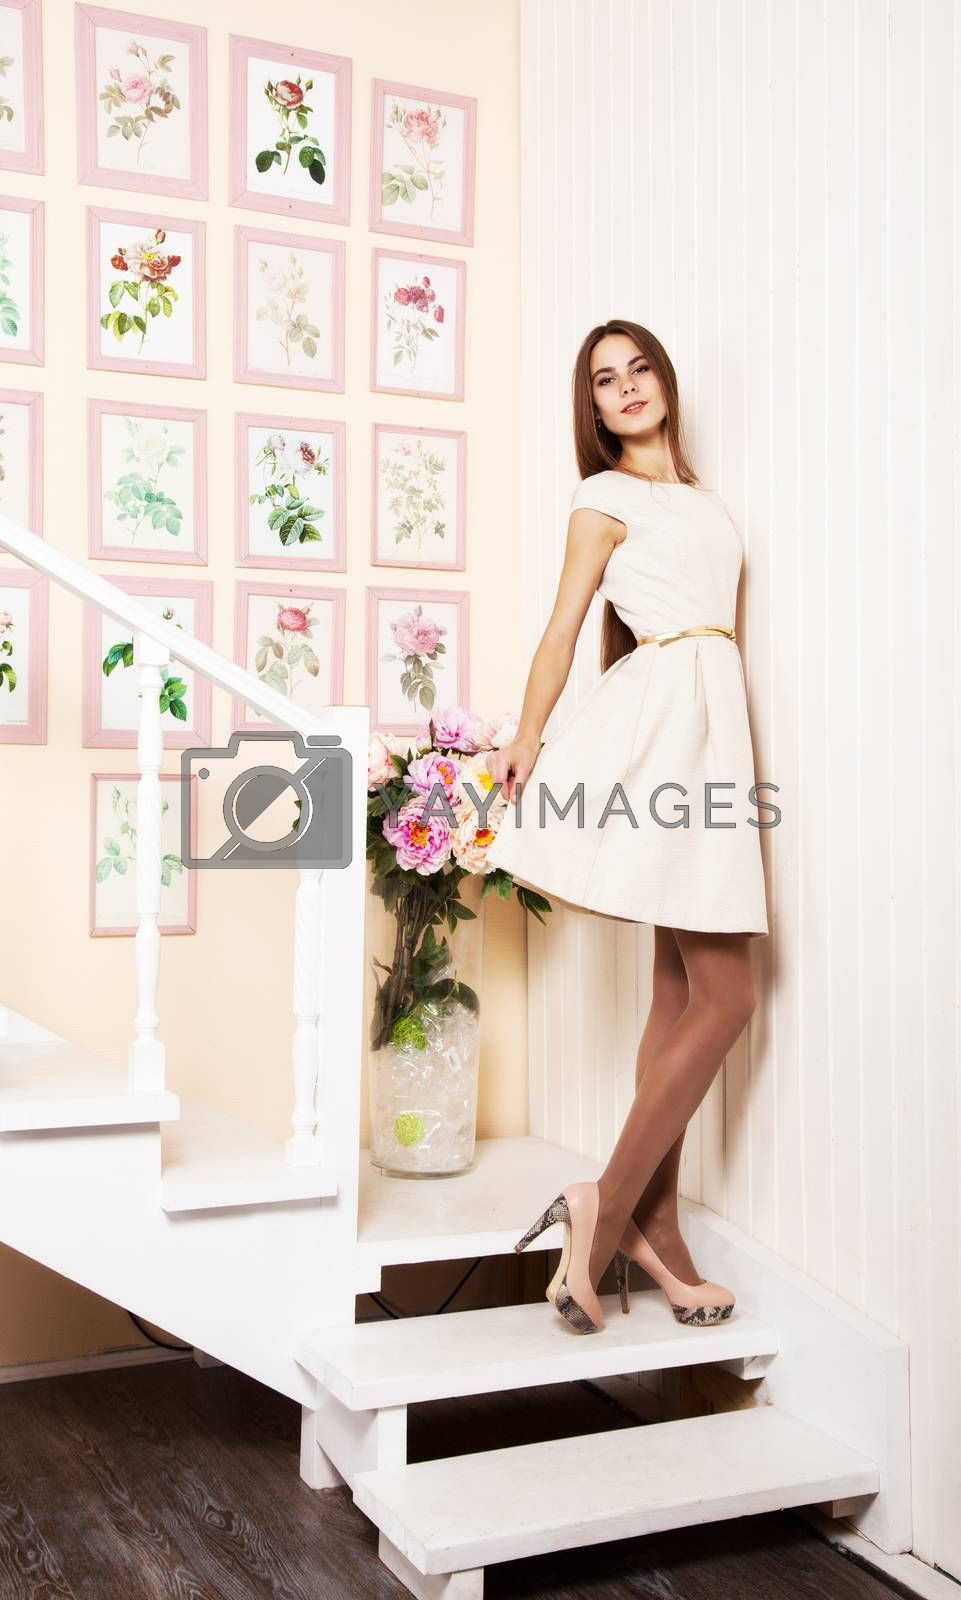 joyful girl in bright dress standing on the stairs indoor